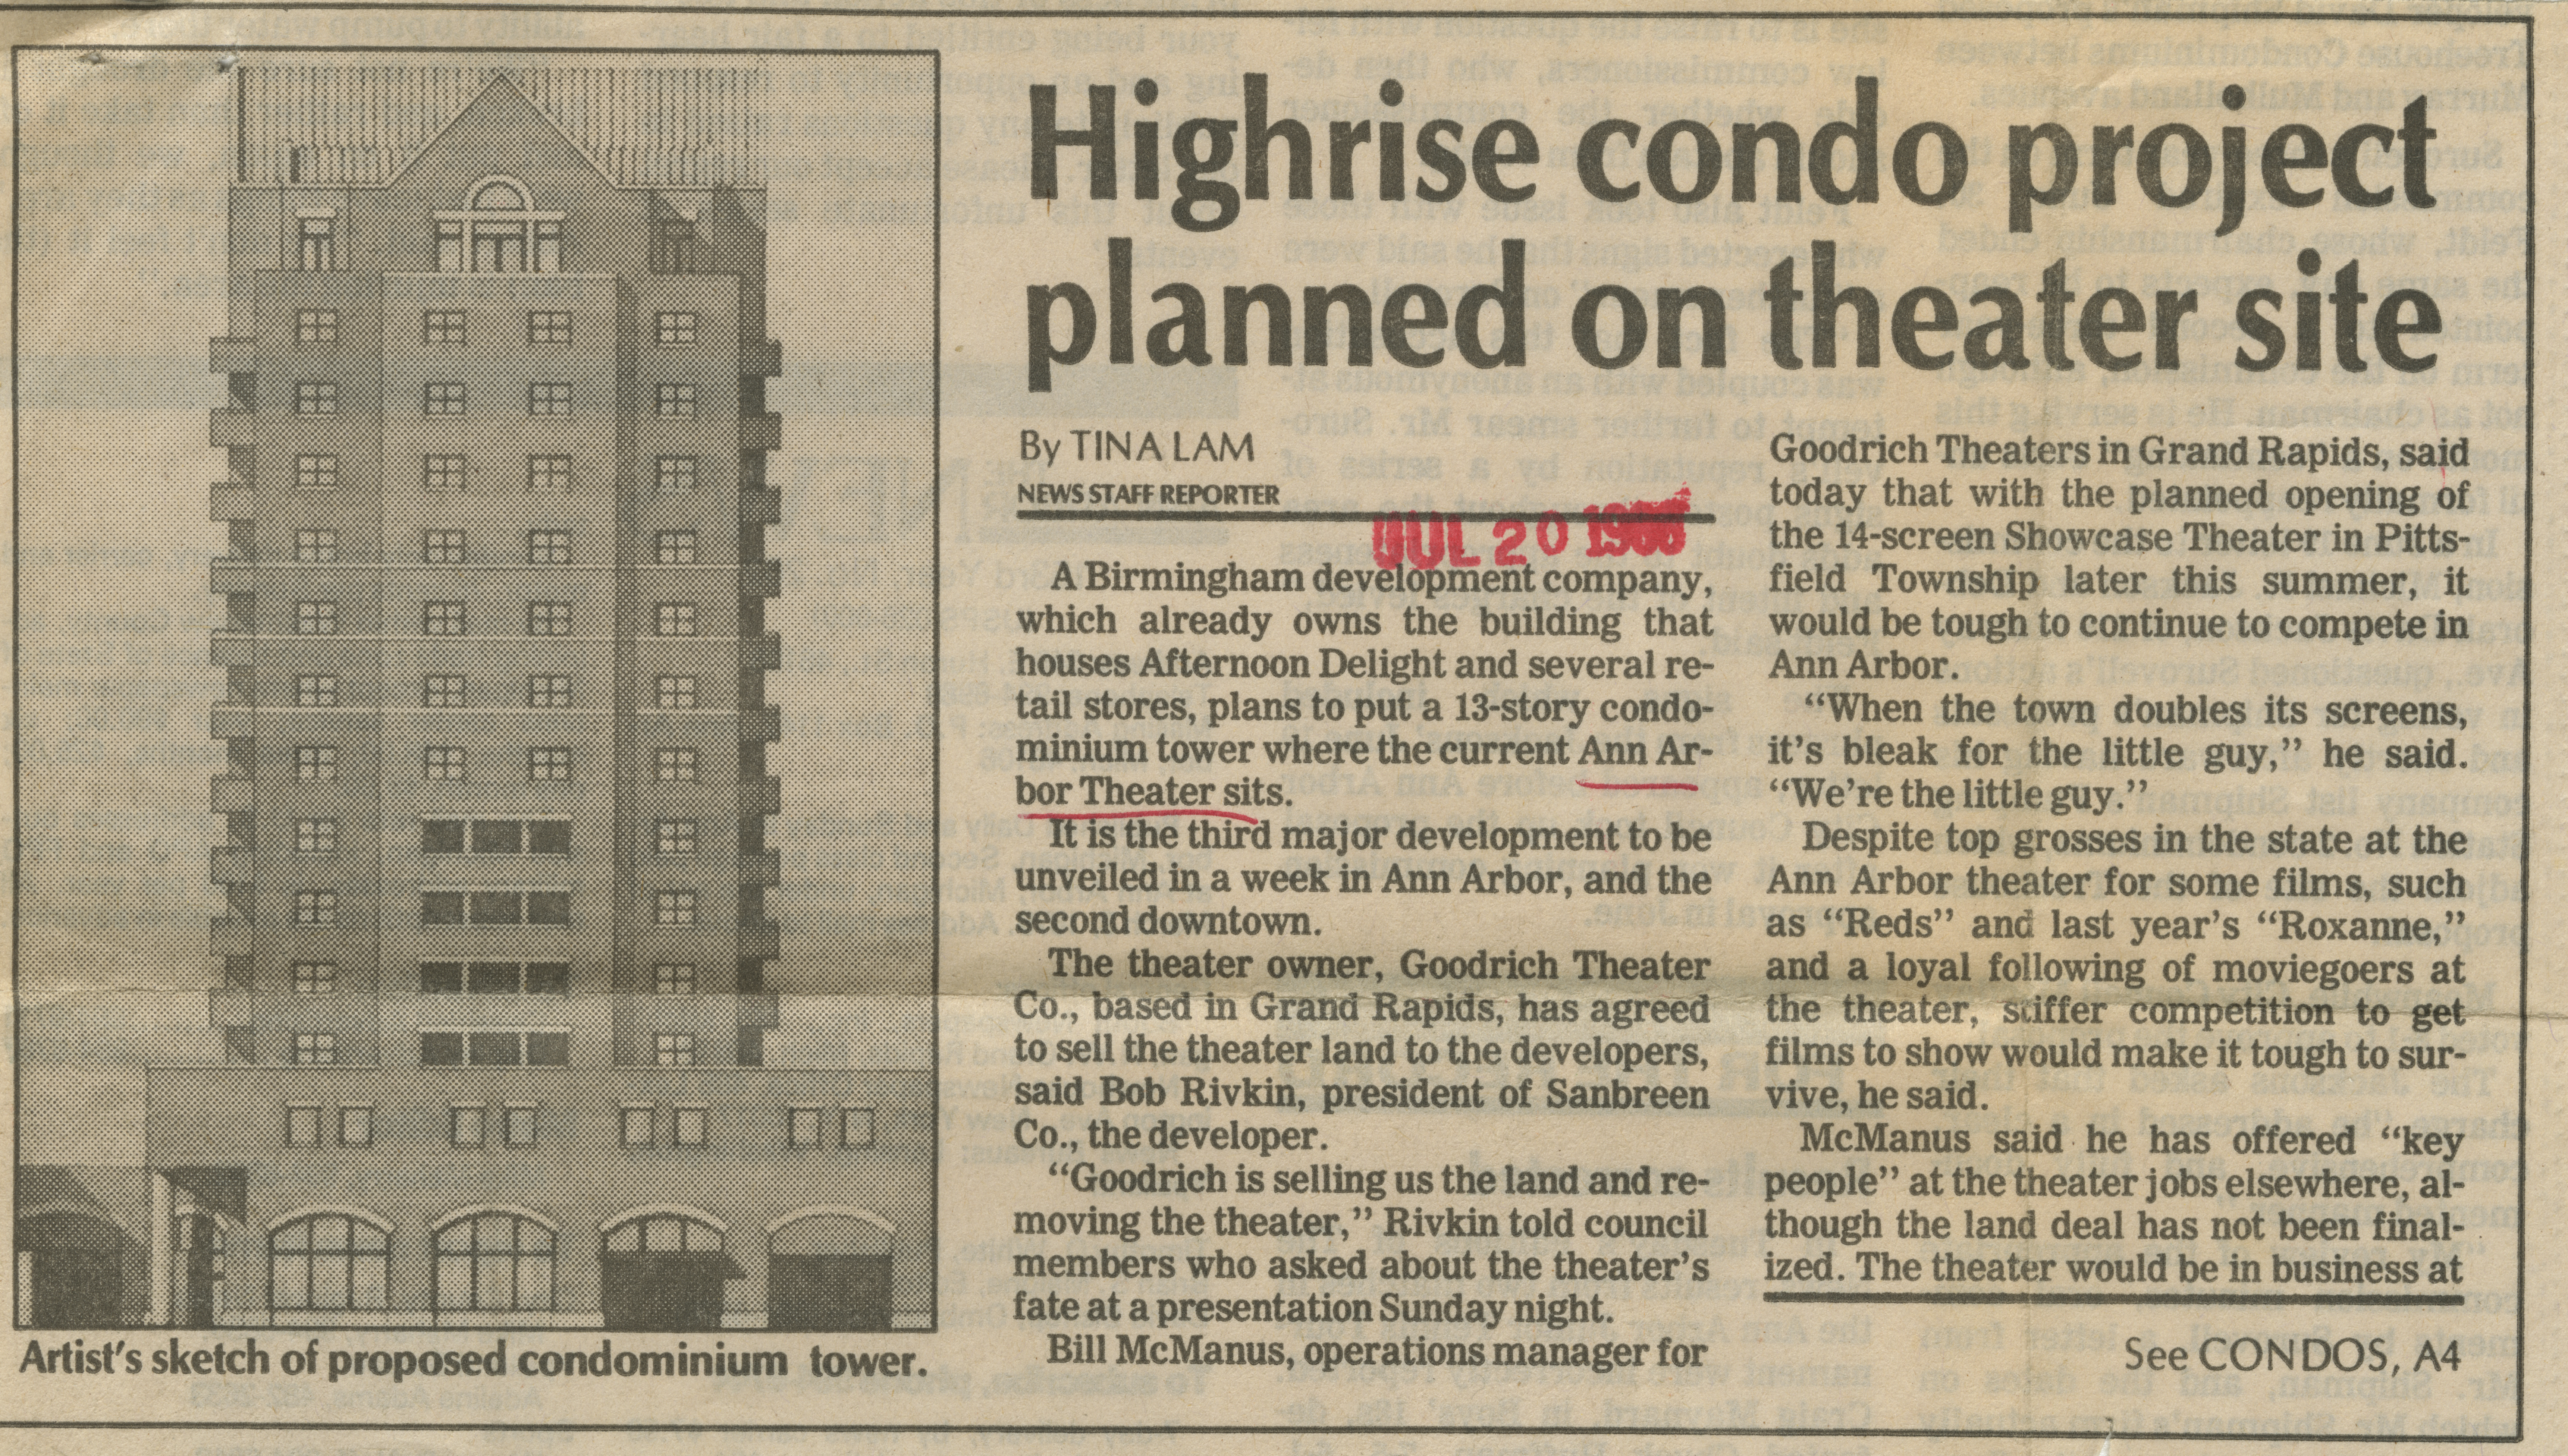 Highrise condo project planned on theater site image